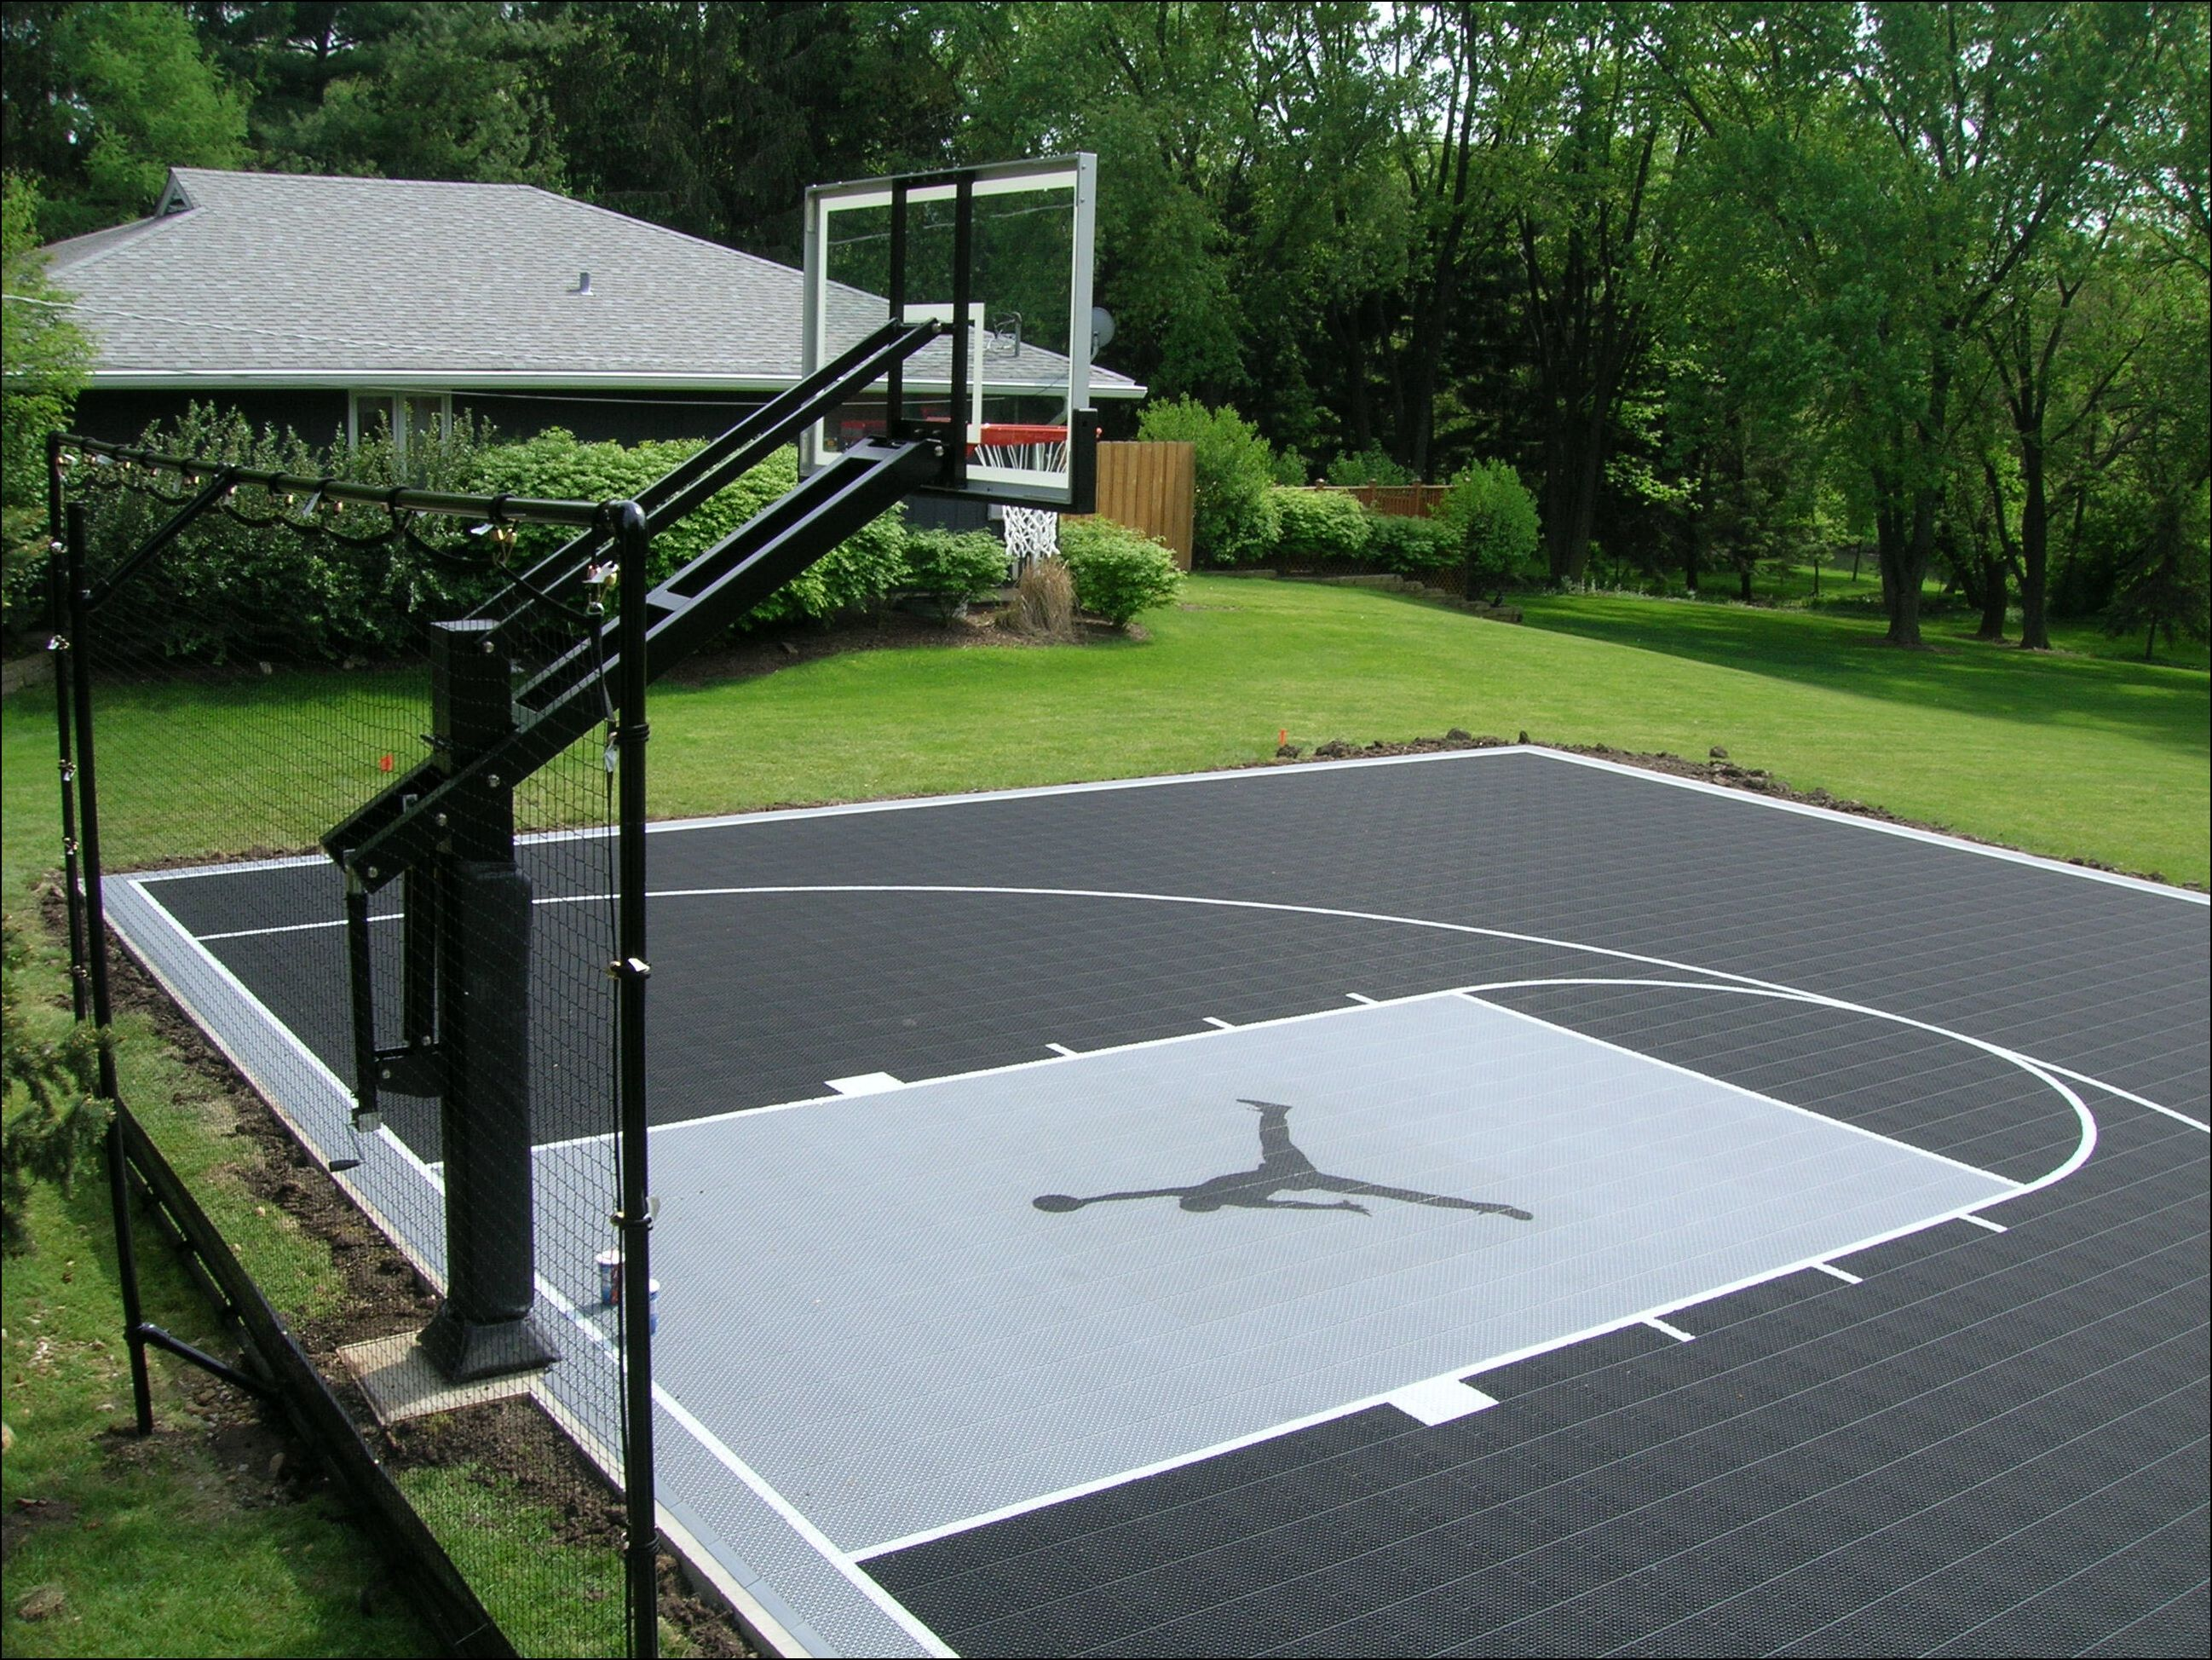 Architecture Wonderful Basketball Court Designs For Modern Beautiful Home  Basketball Court Design